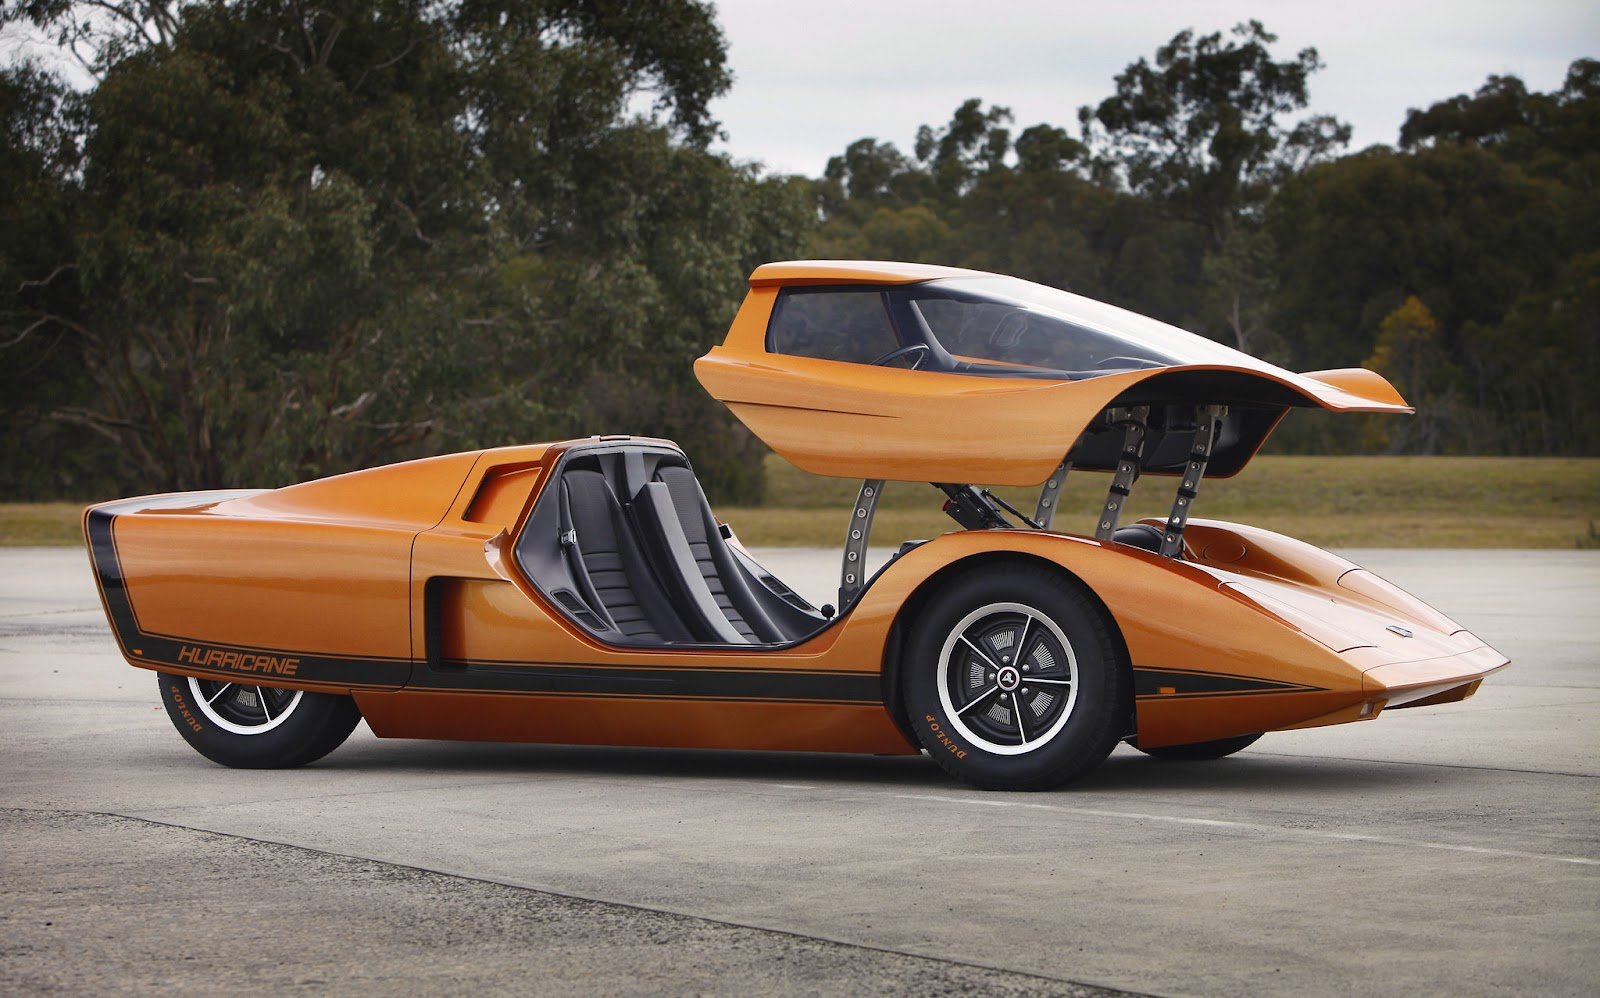 1969 Holden Hurricane.